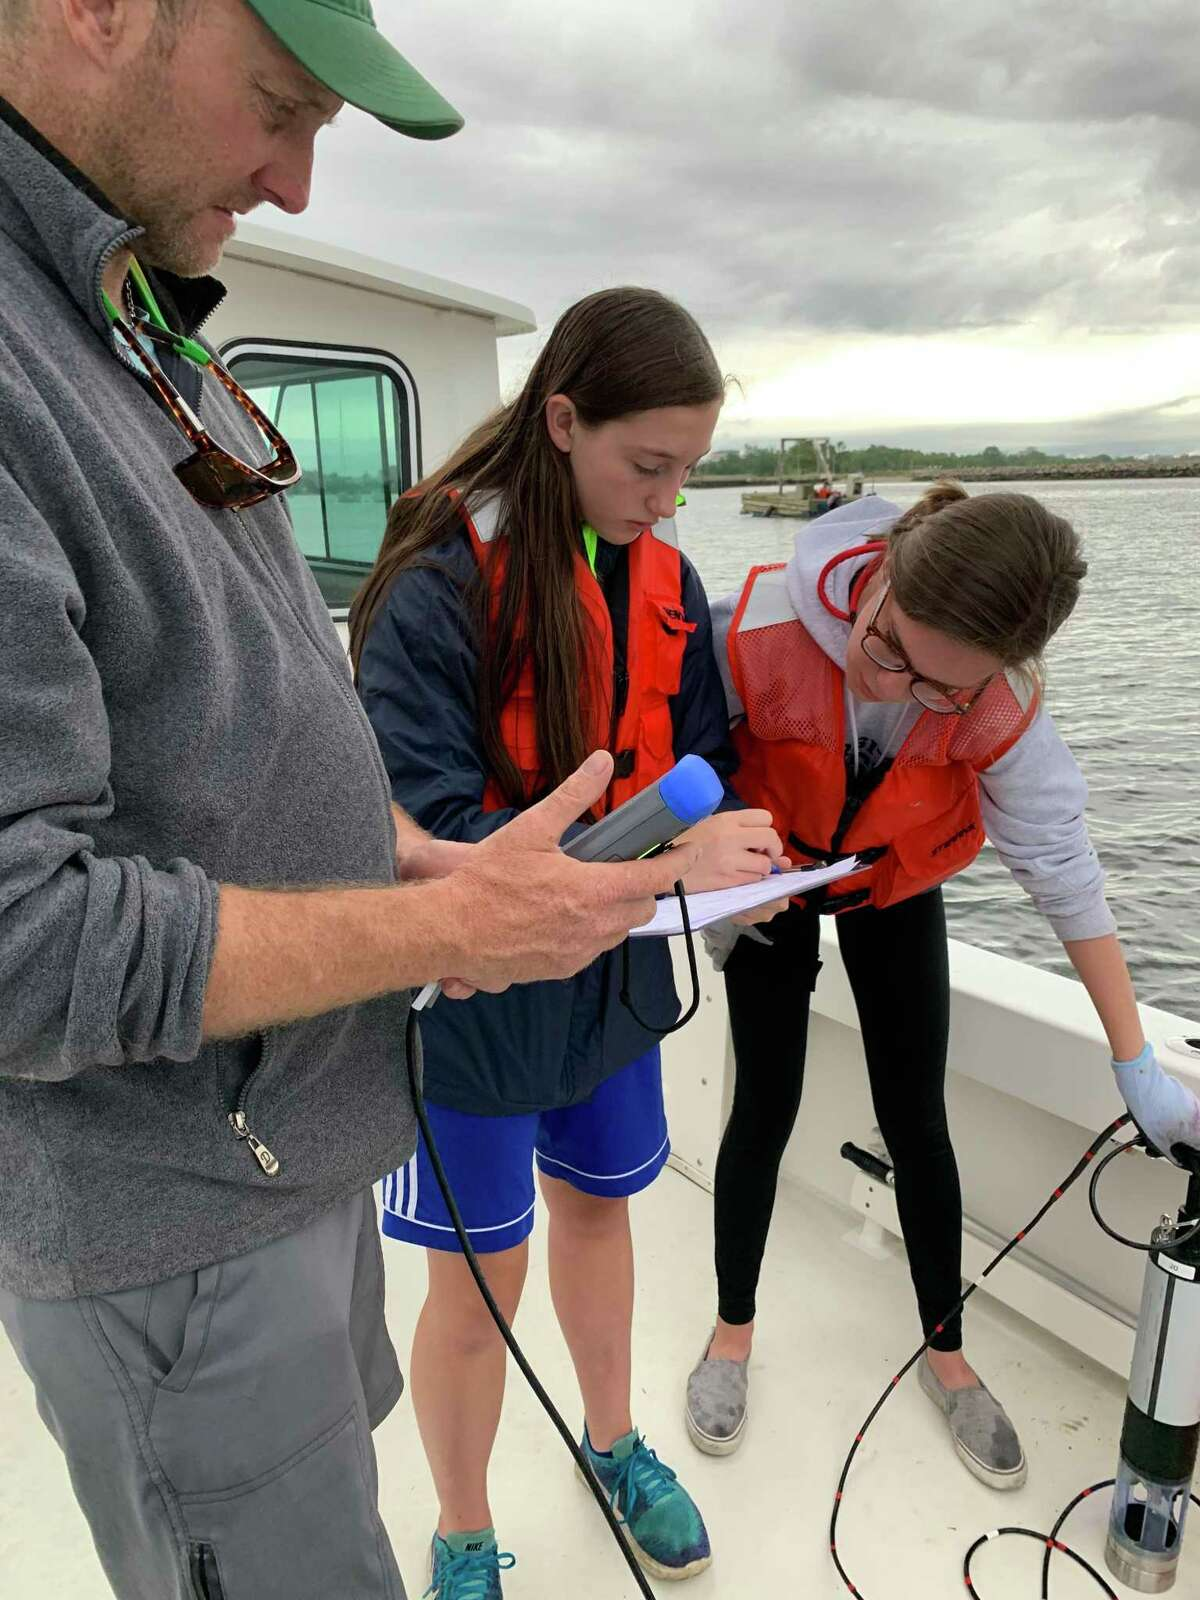 Kevin Blagys, a study volunteer, and students Sienna Matregrano and Charlotte Hickey, check their equipment for testing.